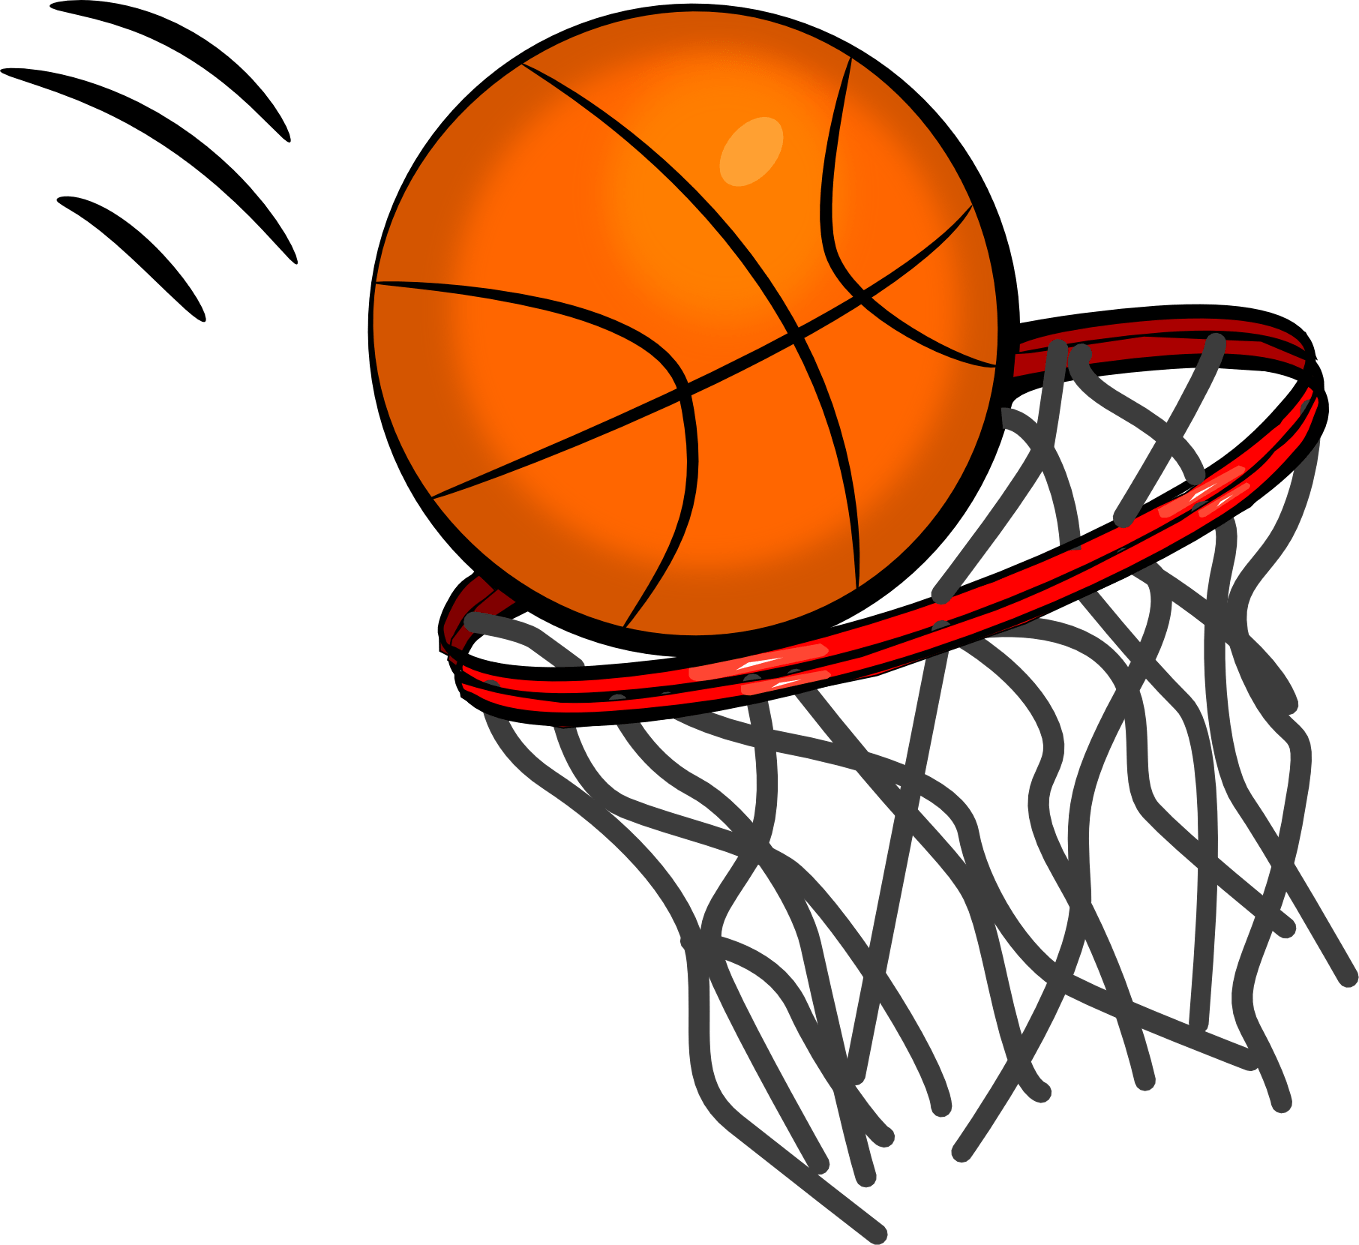 Basketball Ball Basketball Ring Transparent Png Stickpng